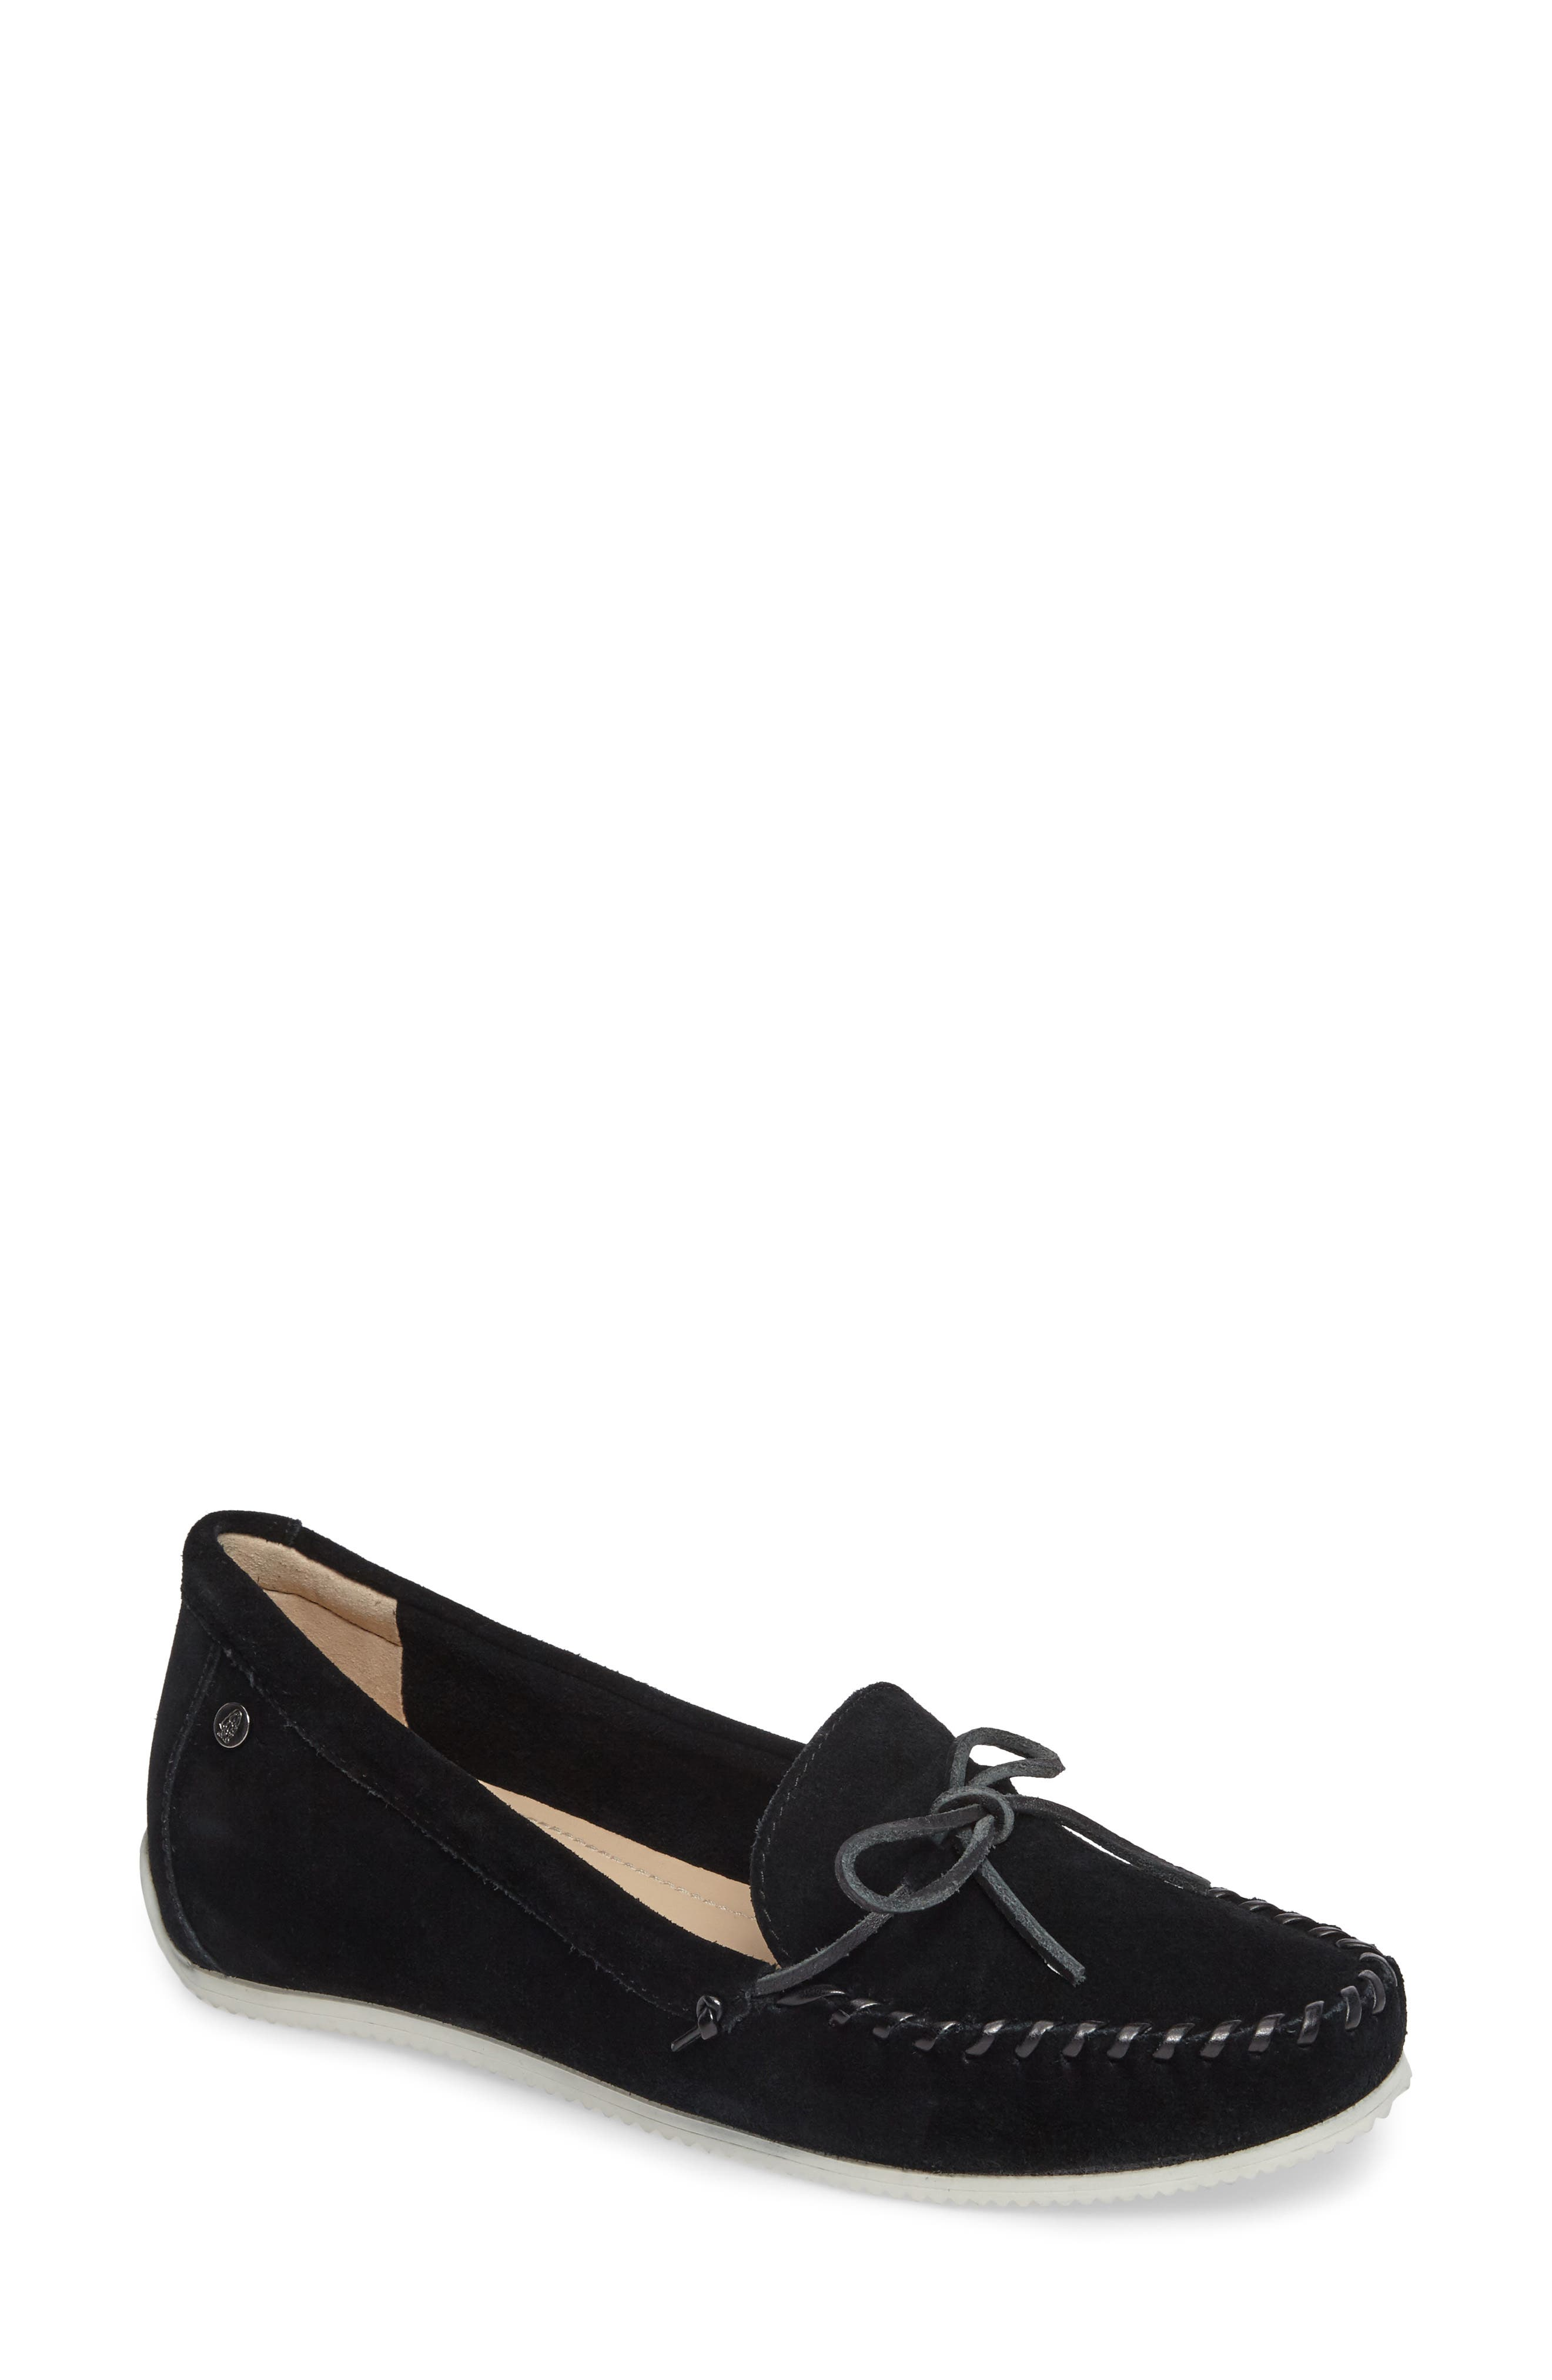 Larghetto Carine Concealed Wedge Moccasin,                         Main,                         color, Black Suede